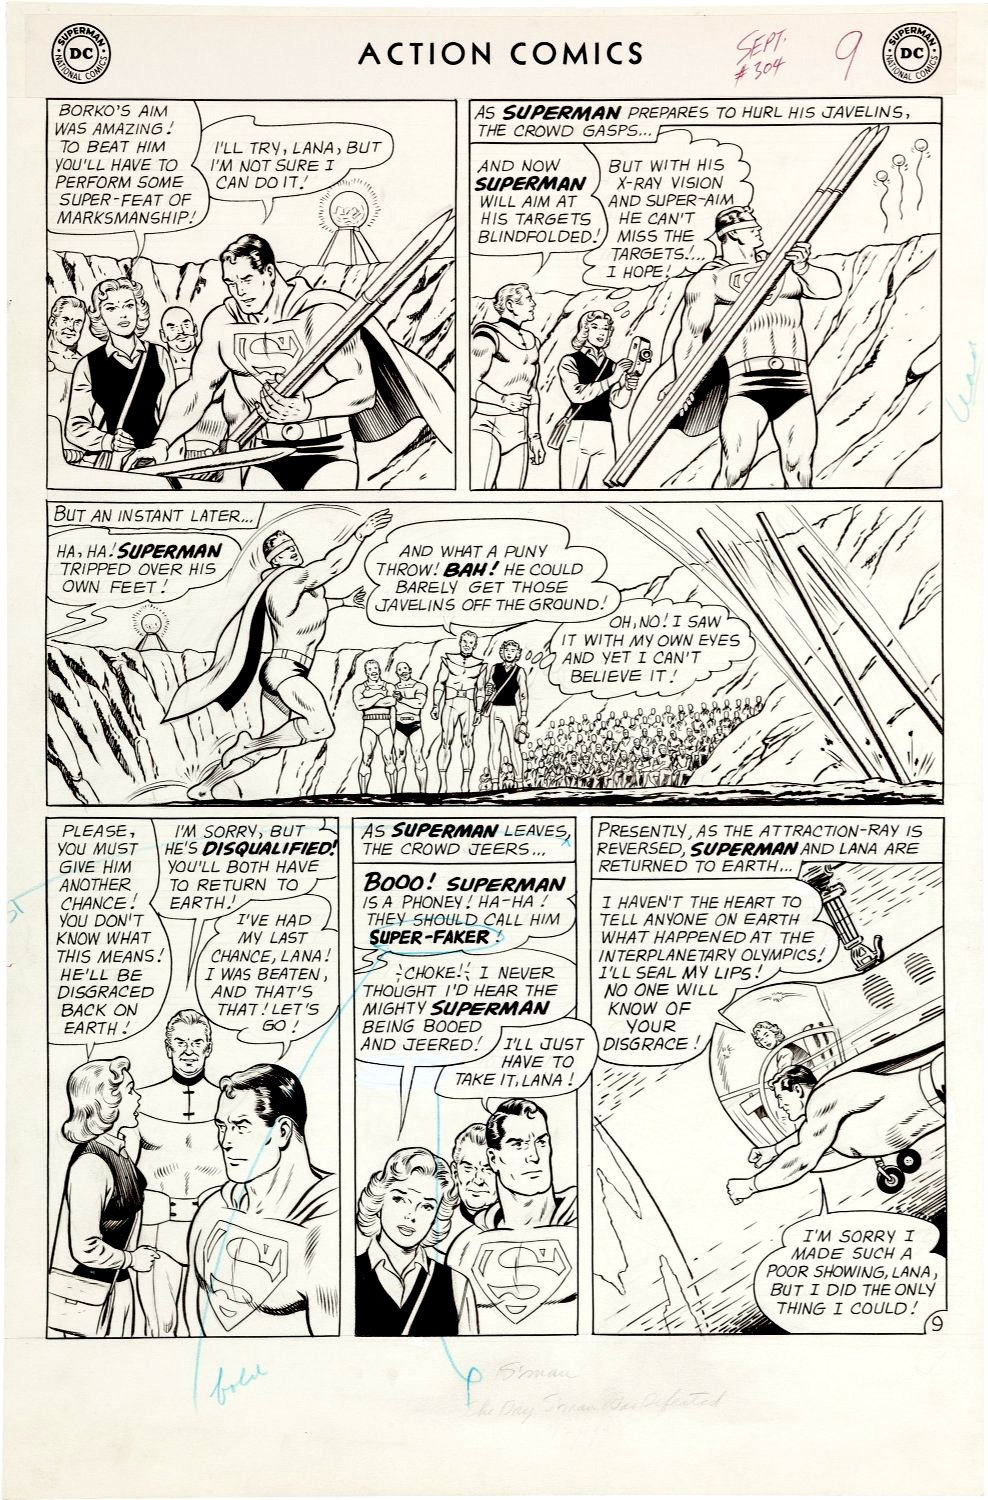 Action Comics #304 p 9 (SUPERMAN IN ACTION IN EVERY PANEL! Large Art - 1963